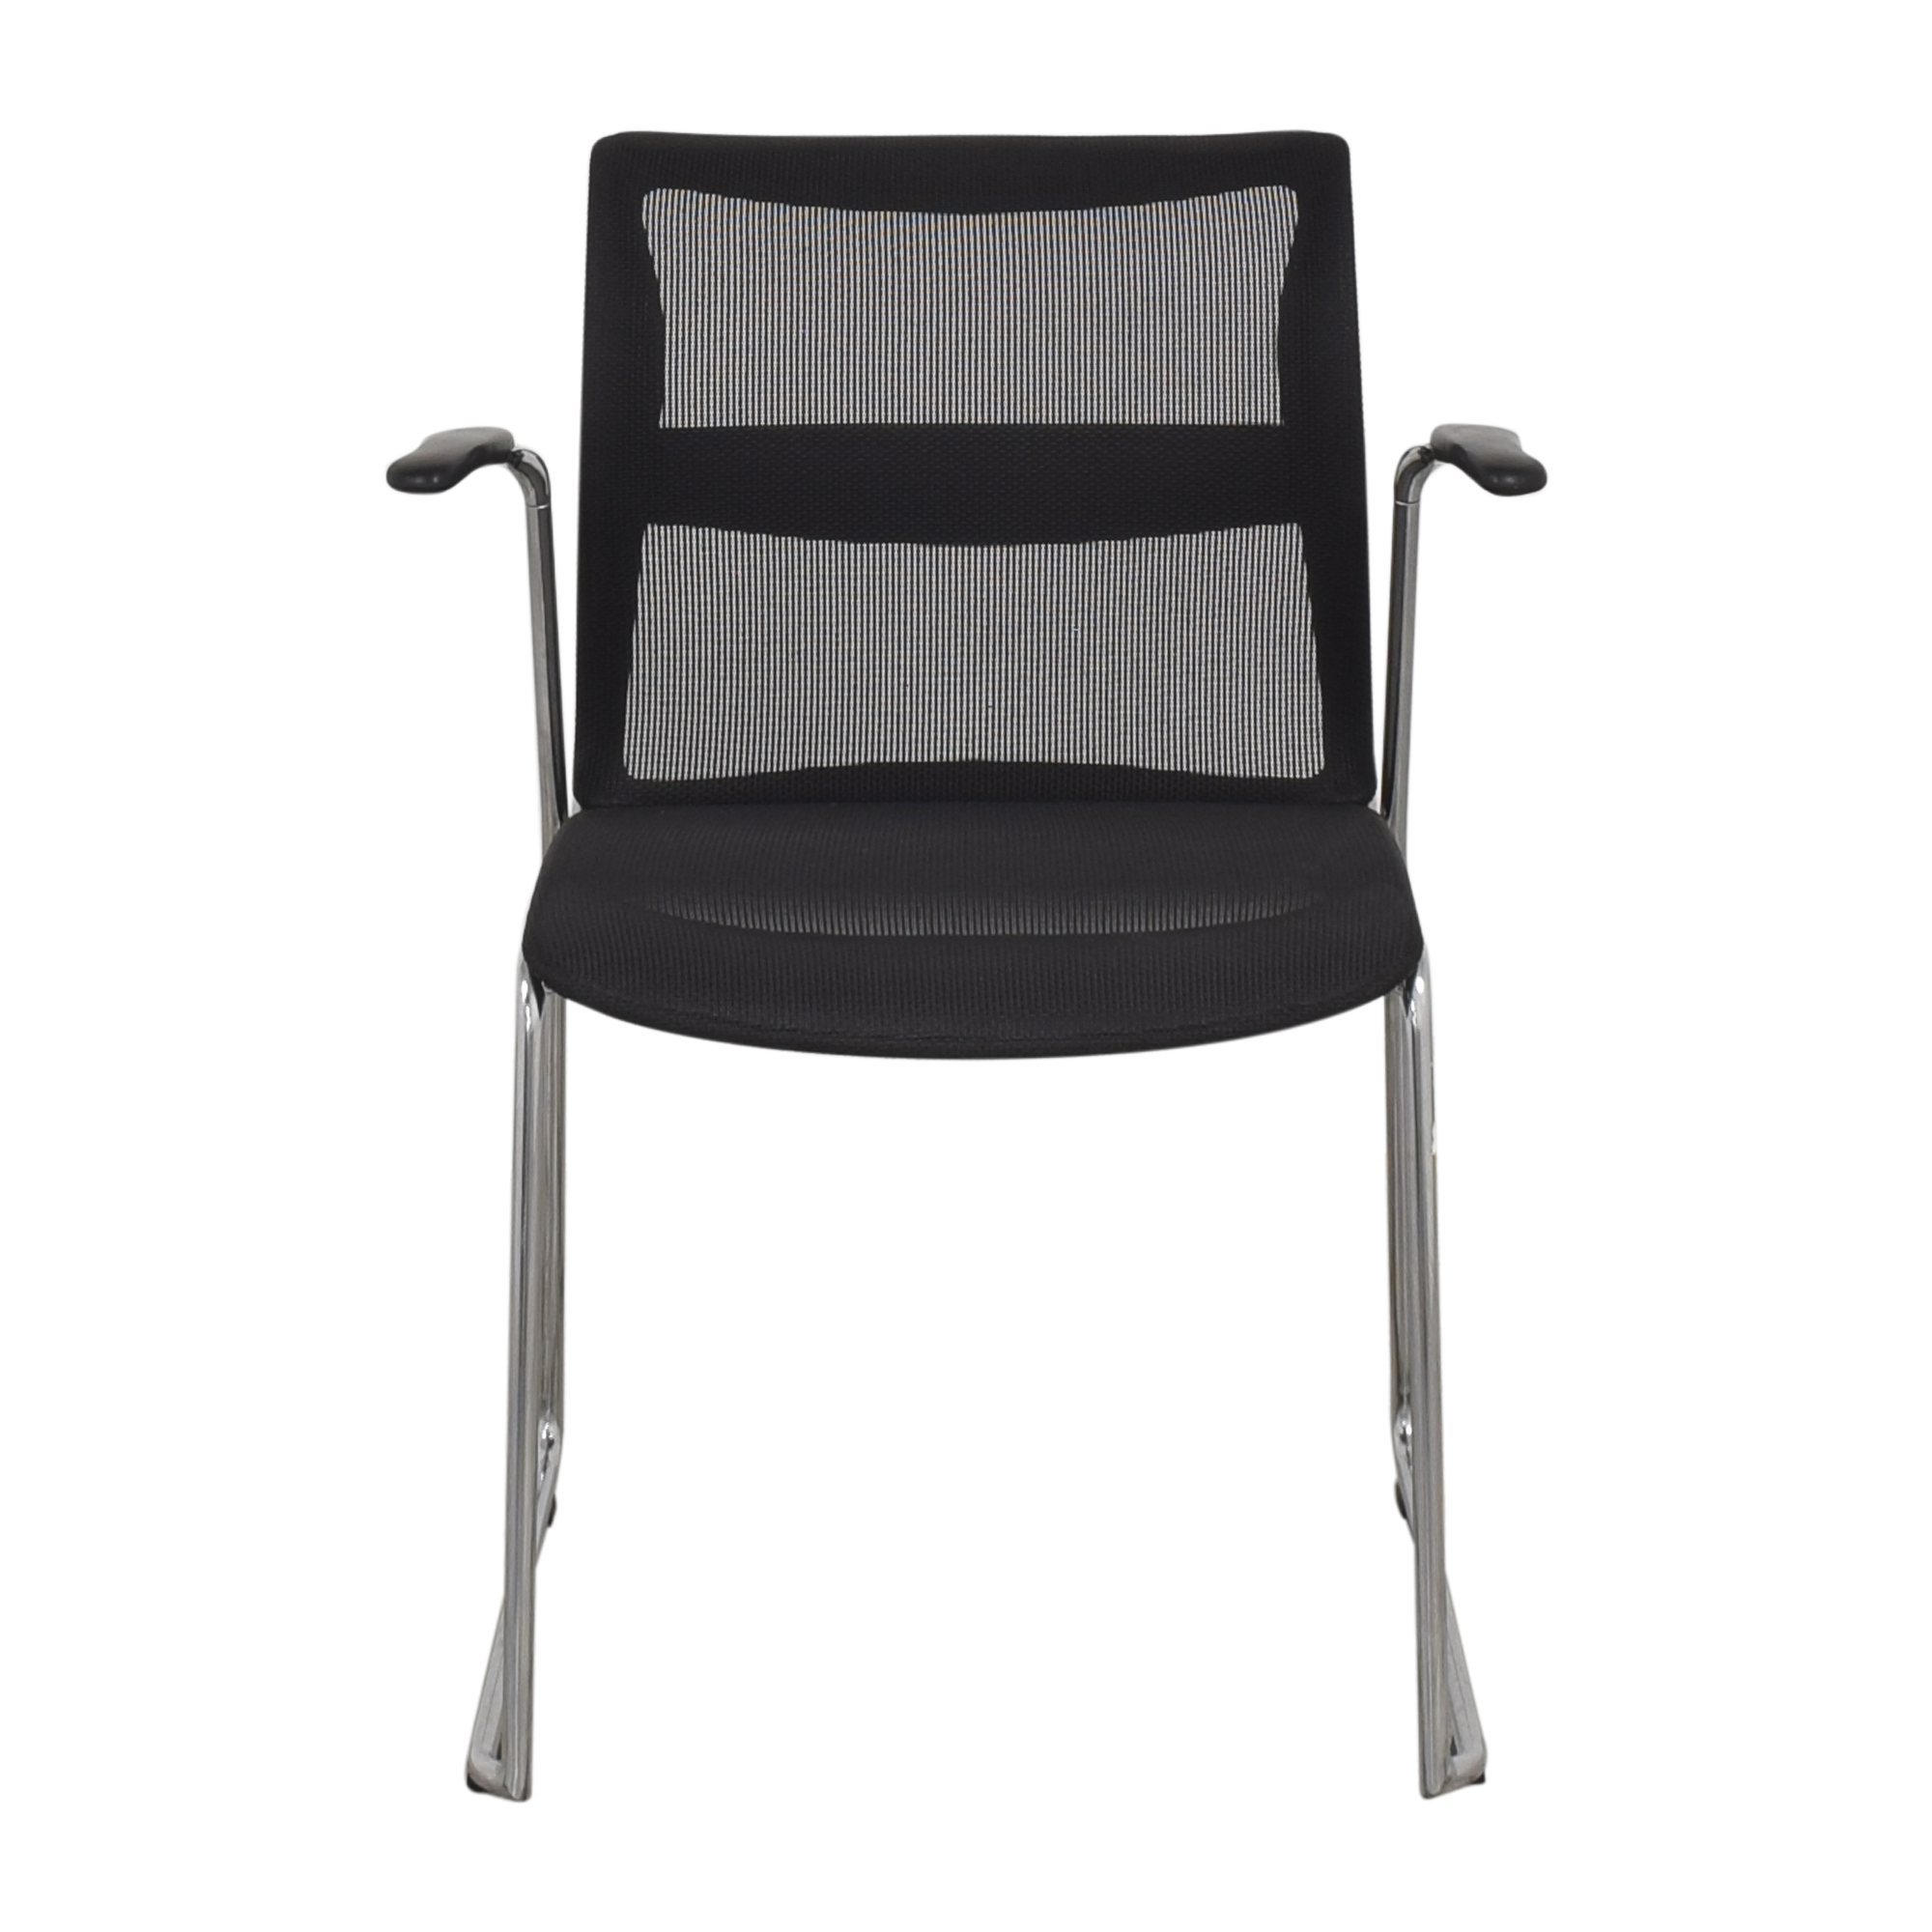 Stylex Stylex Zephyr Stacking Arm Chair ma